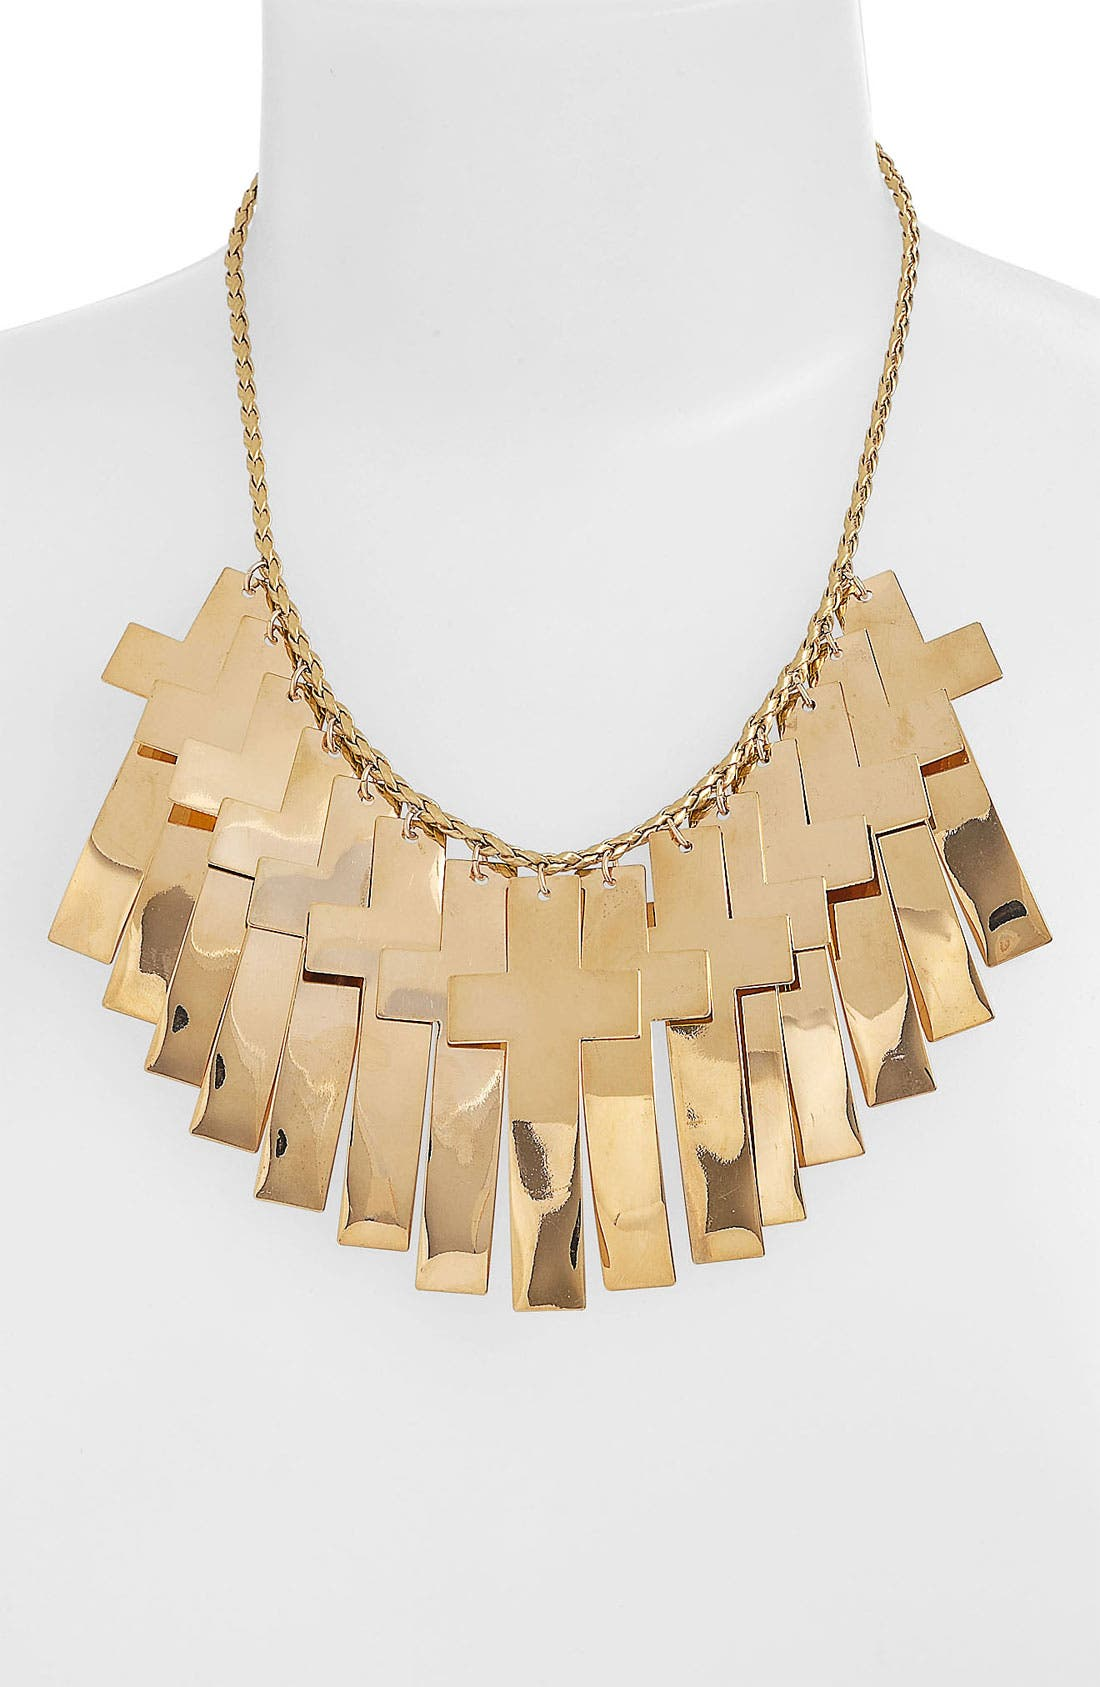 Alternate Image 1 Selected - Belle Noel 'Empyrean' Statement Necklace